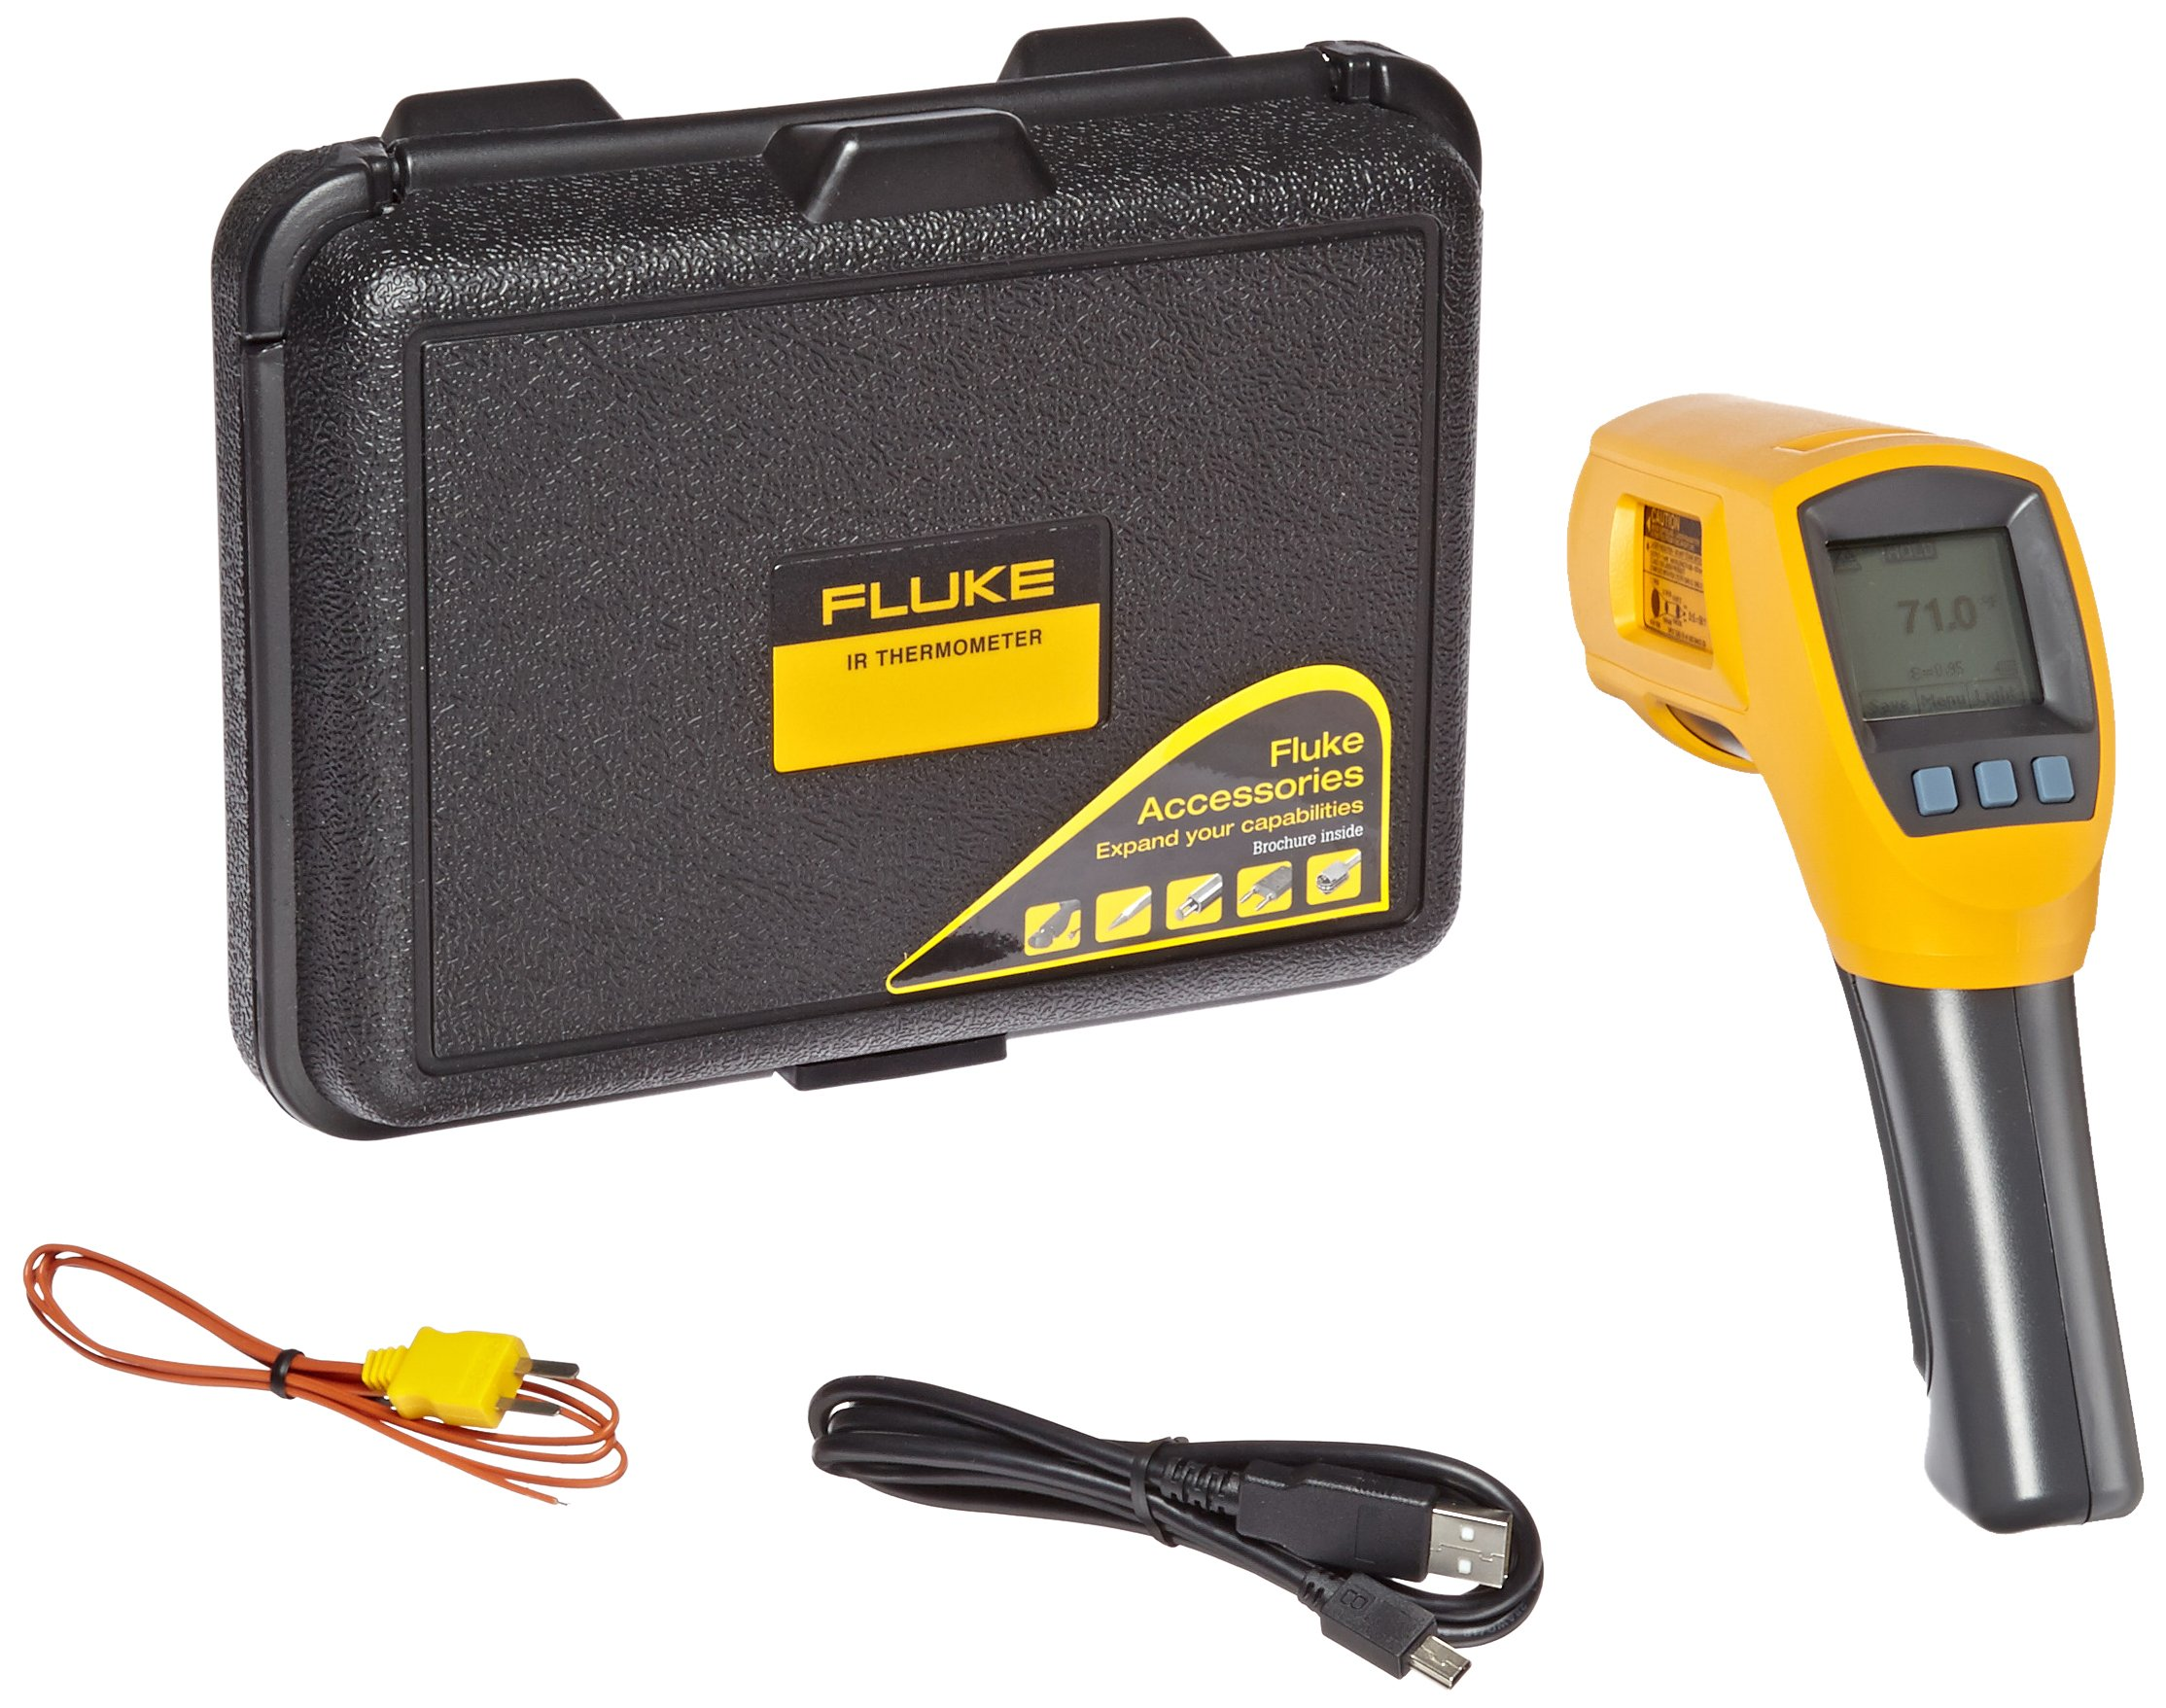 Fluke 568 Infrared Thermometer, 2AA/LR6 Battery, -40 to +1472 Degree F Range with a NIST-Traceable Calibration Certificate with Data by Fluke